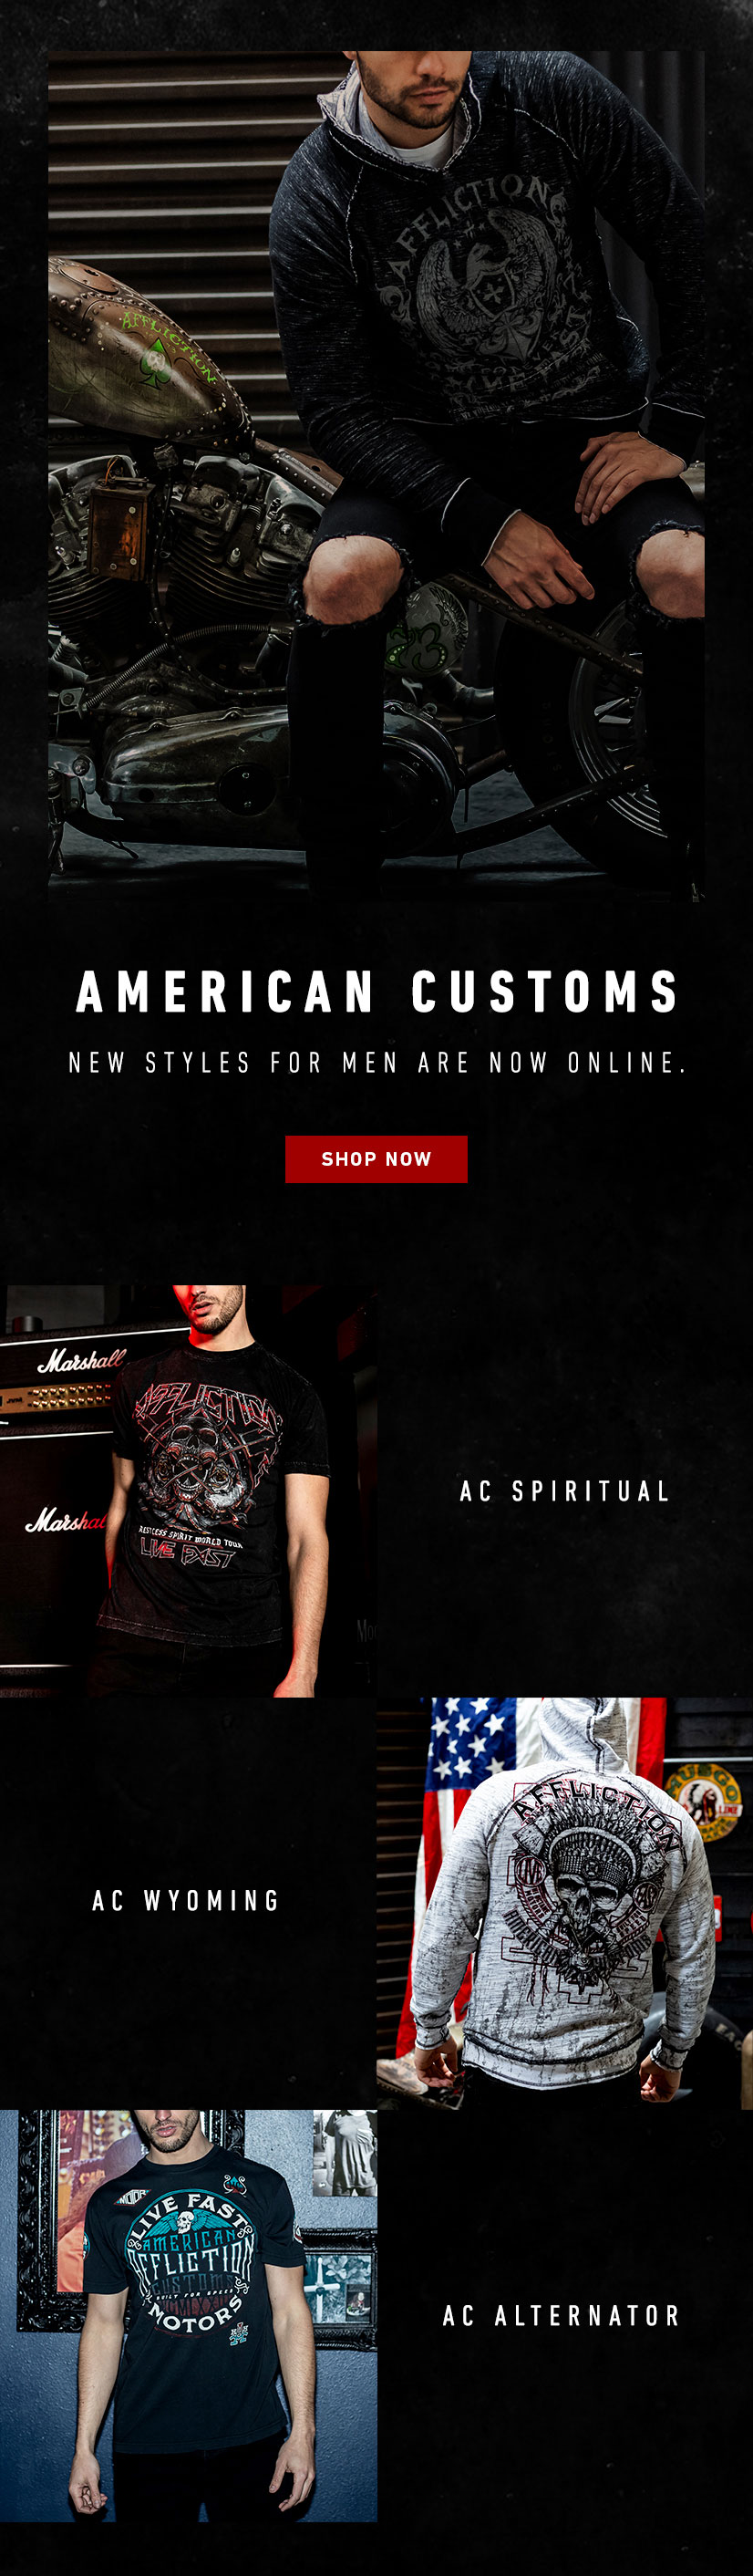 American Customs new styles fro men are now online.